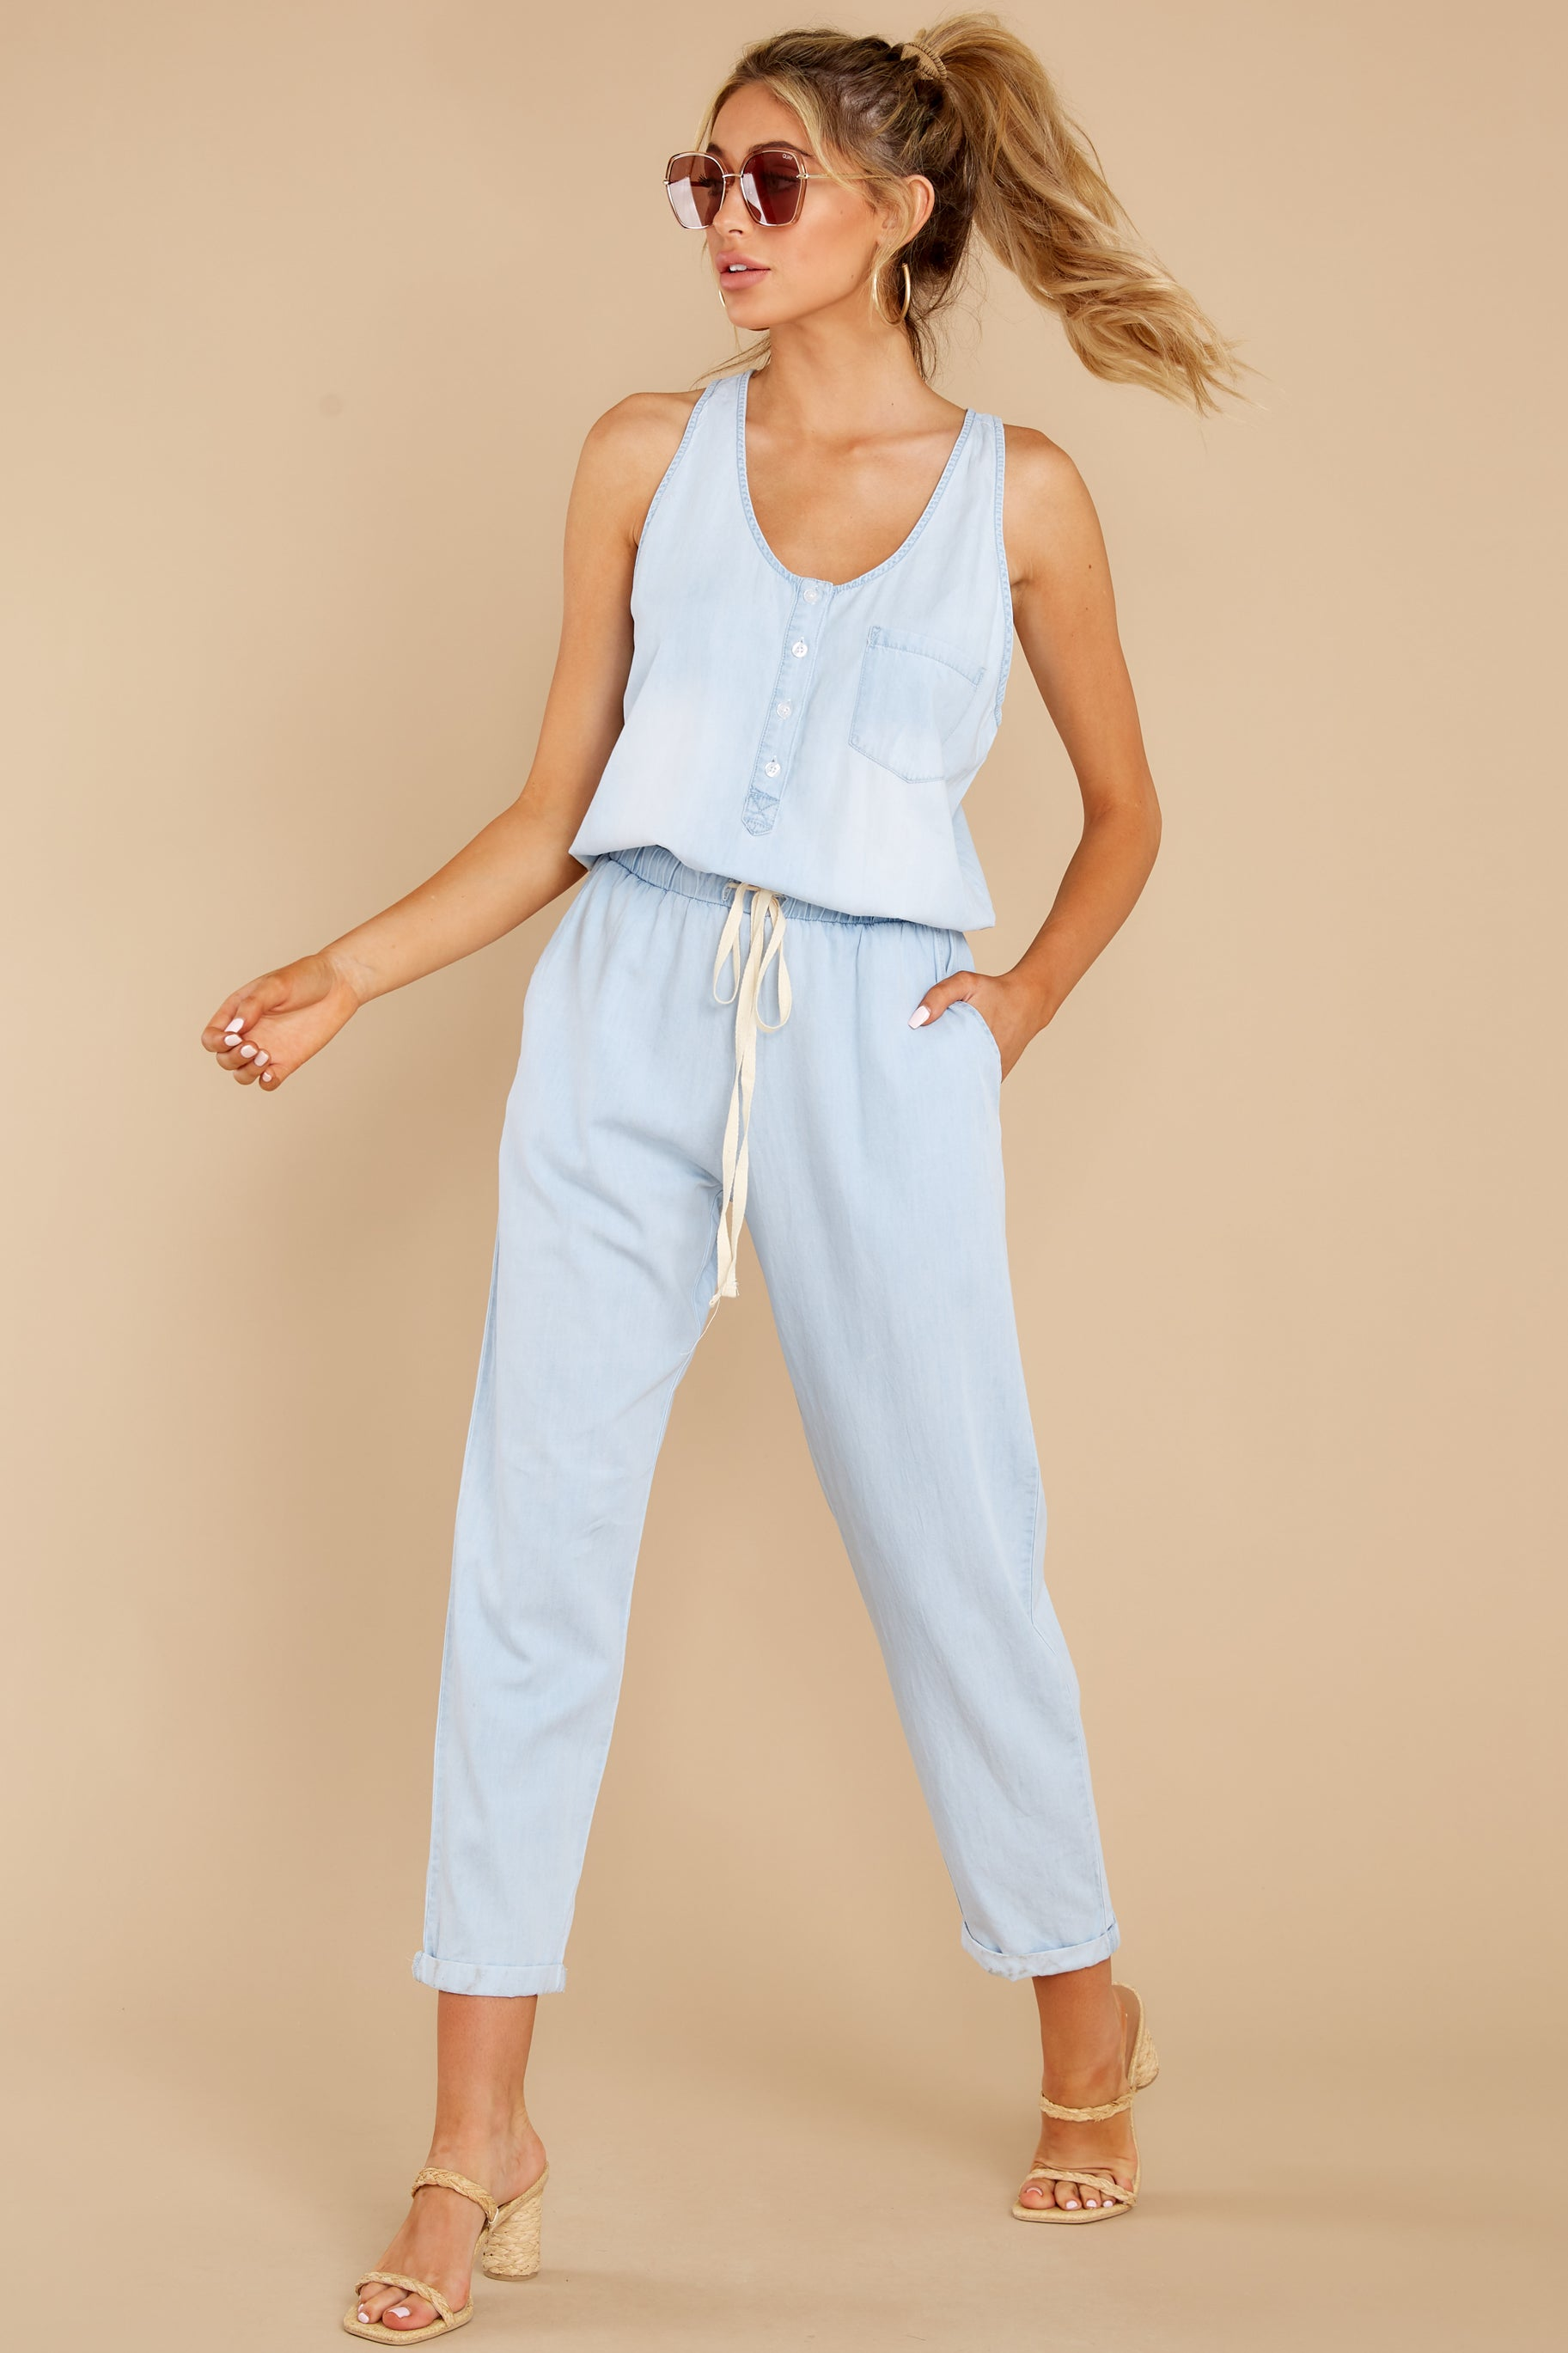 4 Play It Back Light Wash Chambray Jumpsuit at reddress.com